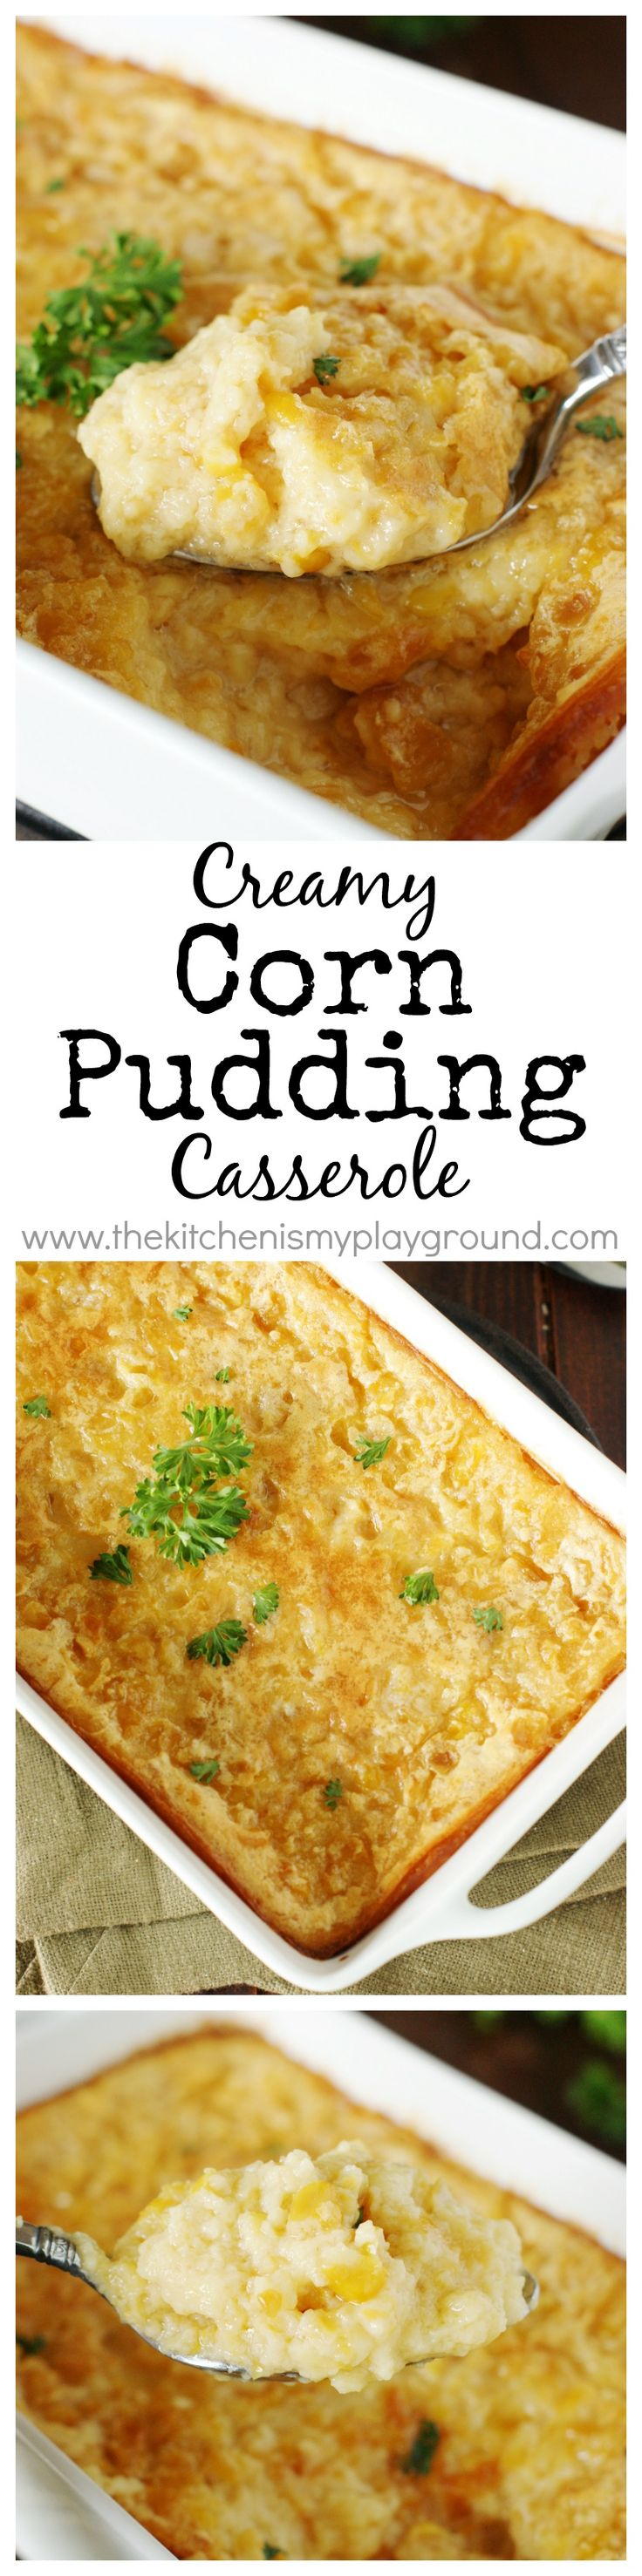 Corn Pudding Casserole ~ creamy & comforting, compliments of Hilda Crocketts Chesapeake House!  www.thekitchenismyplayground.com